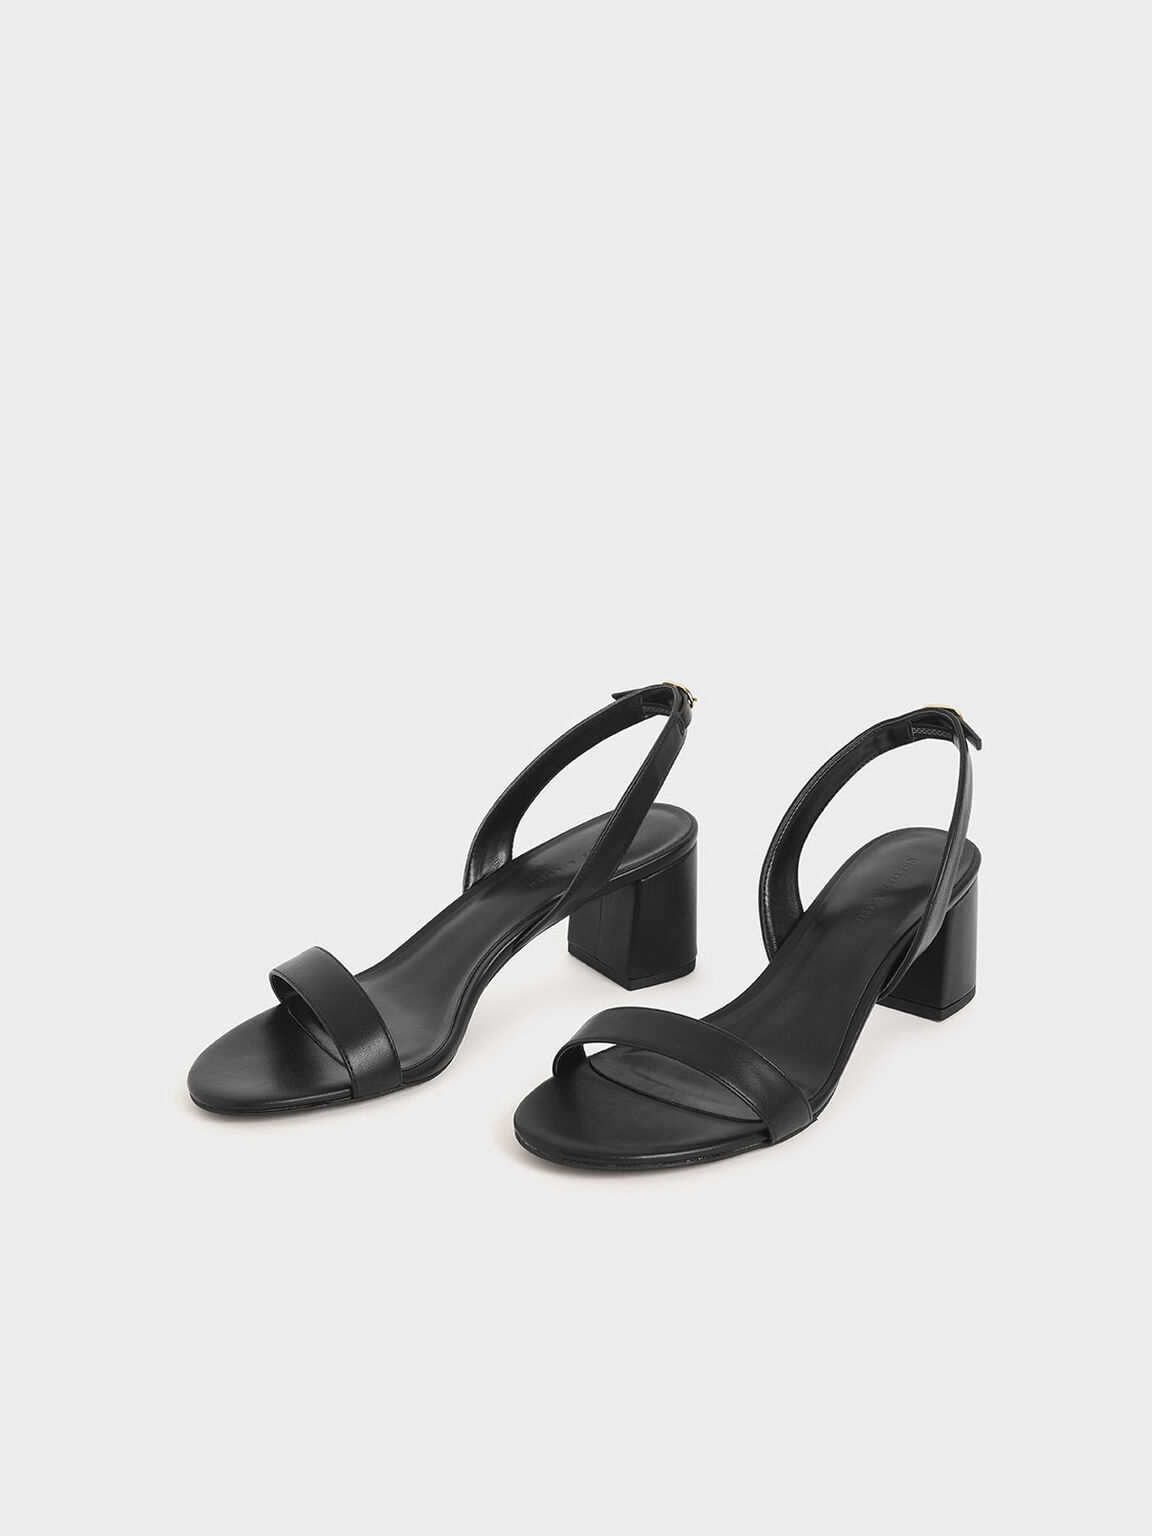 Slingback Heeled Sandals, Black, hi-res